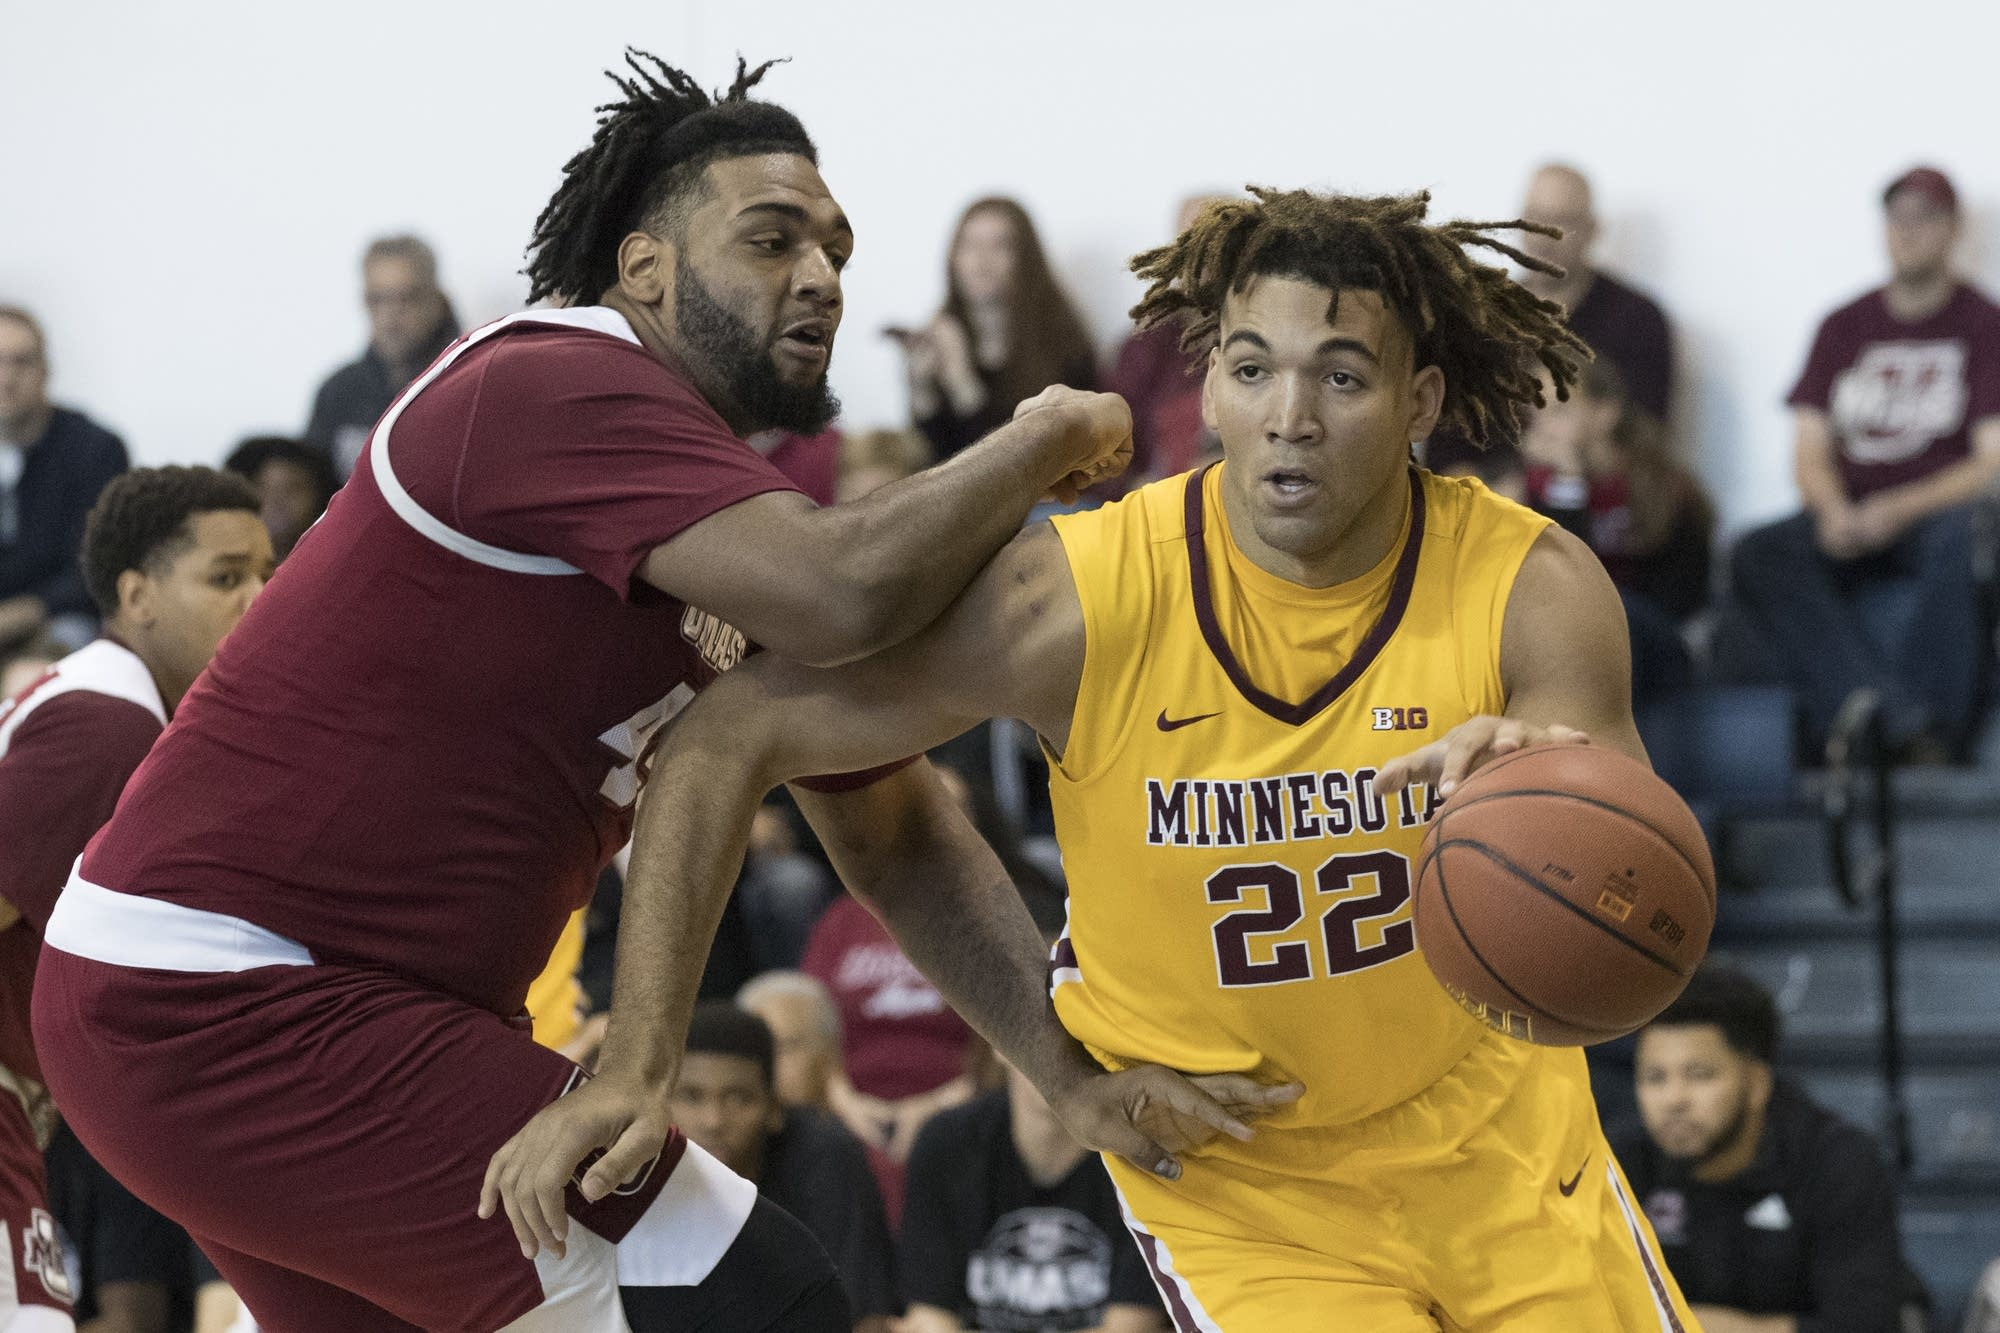 Gopher Basketball Player Could Face Expulsion After Third Assault Allegation